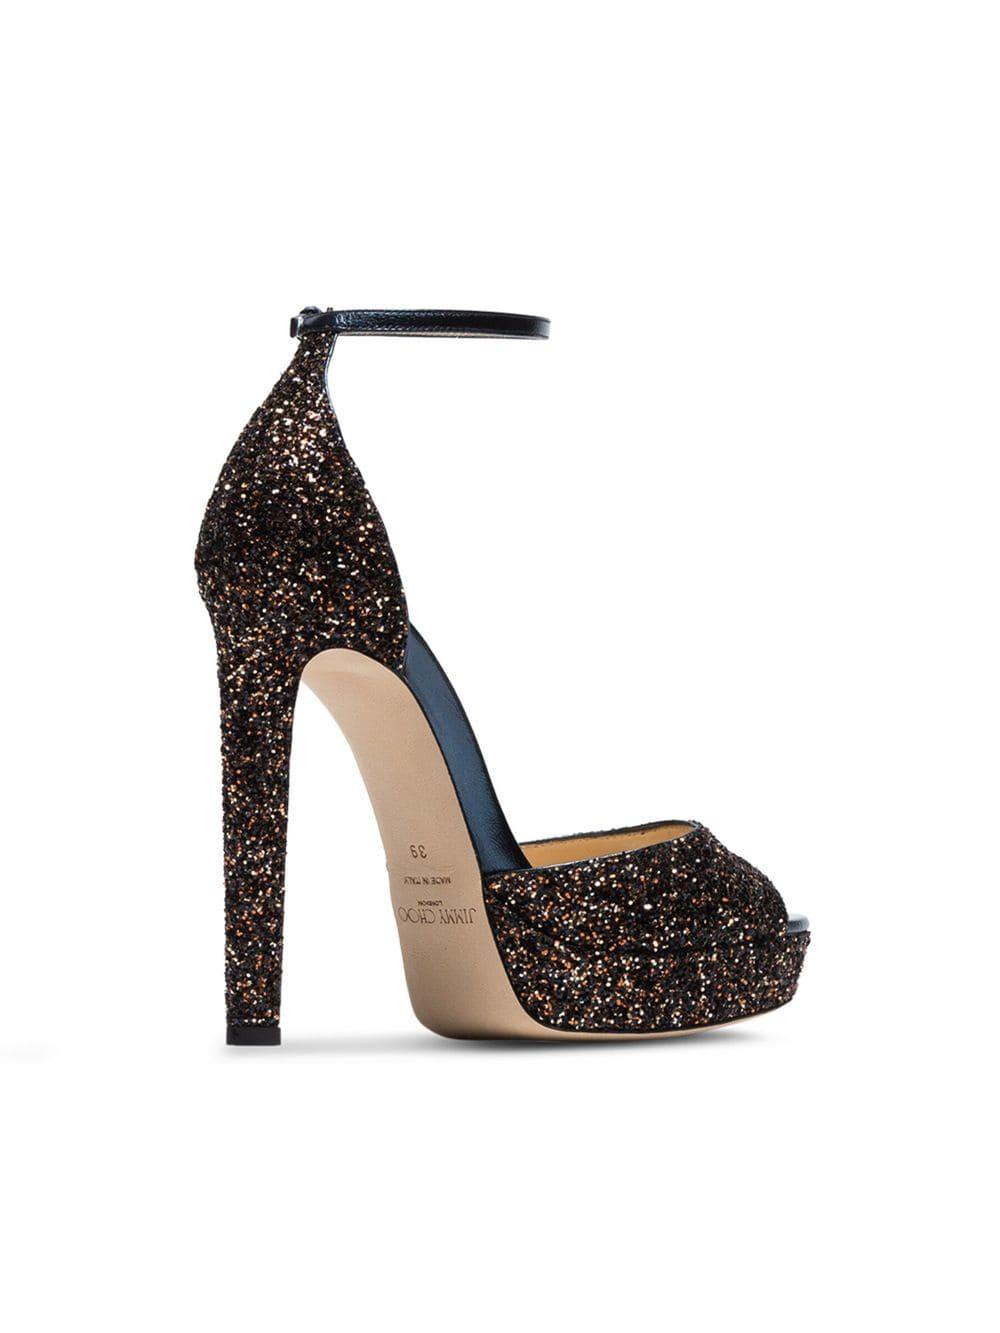 b72903ab097 Jimmy Choo - Metallic Pattie 130 Glitter Platform Sandals - Lyst. View  fullscreen